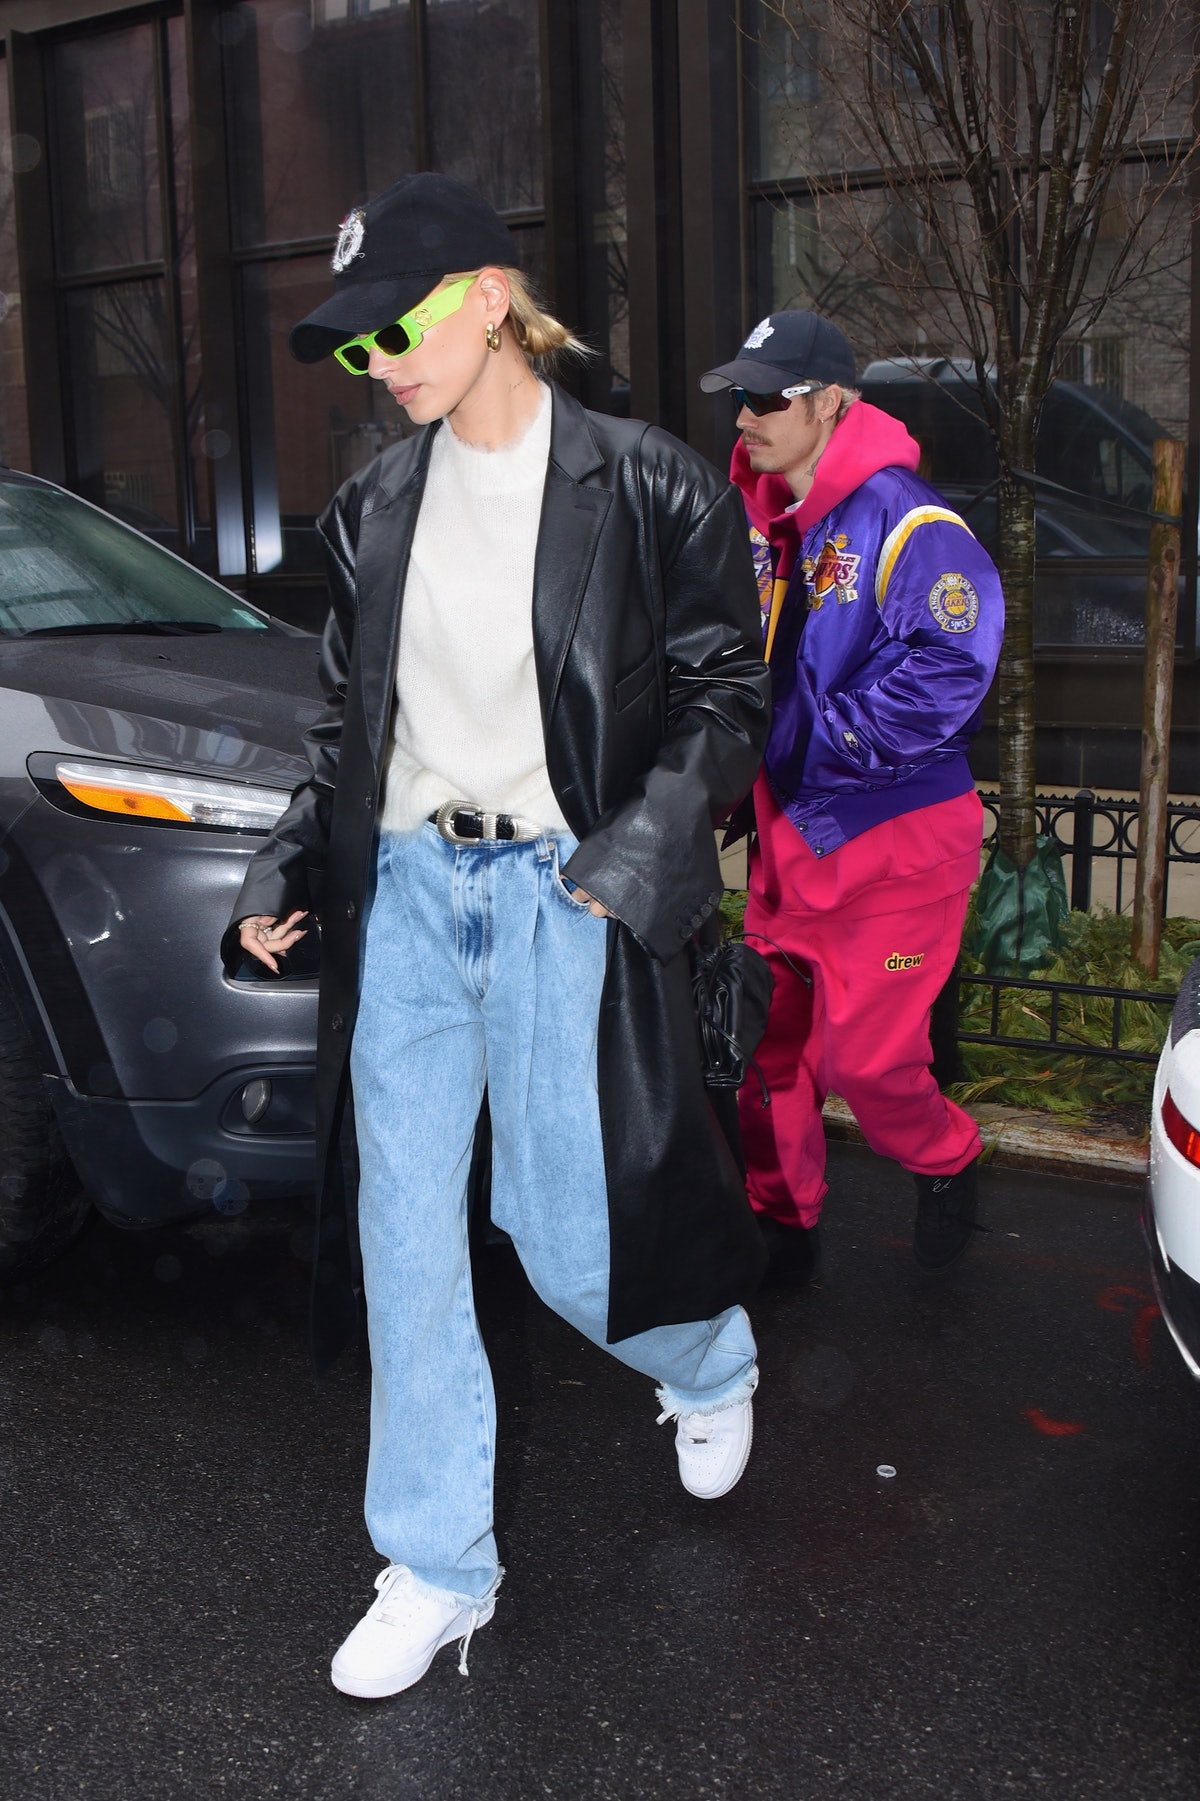 Justin Bieber and Hailey Bieber in New York City.